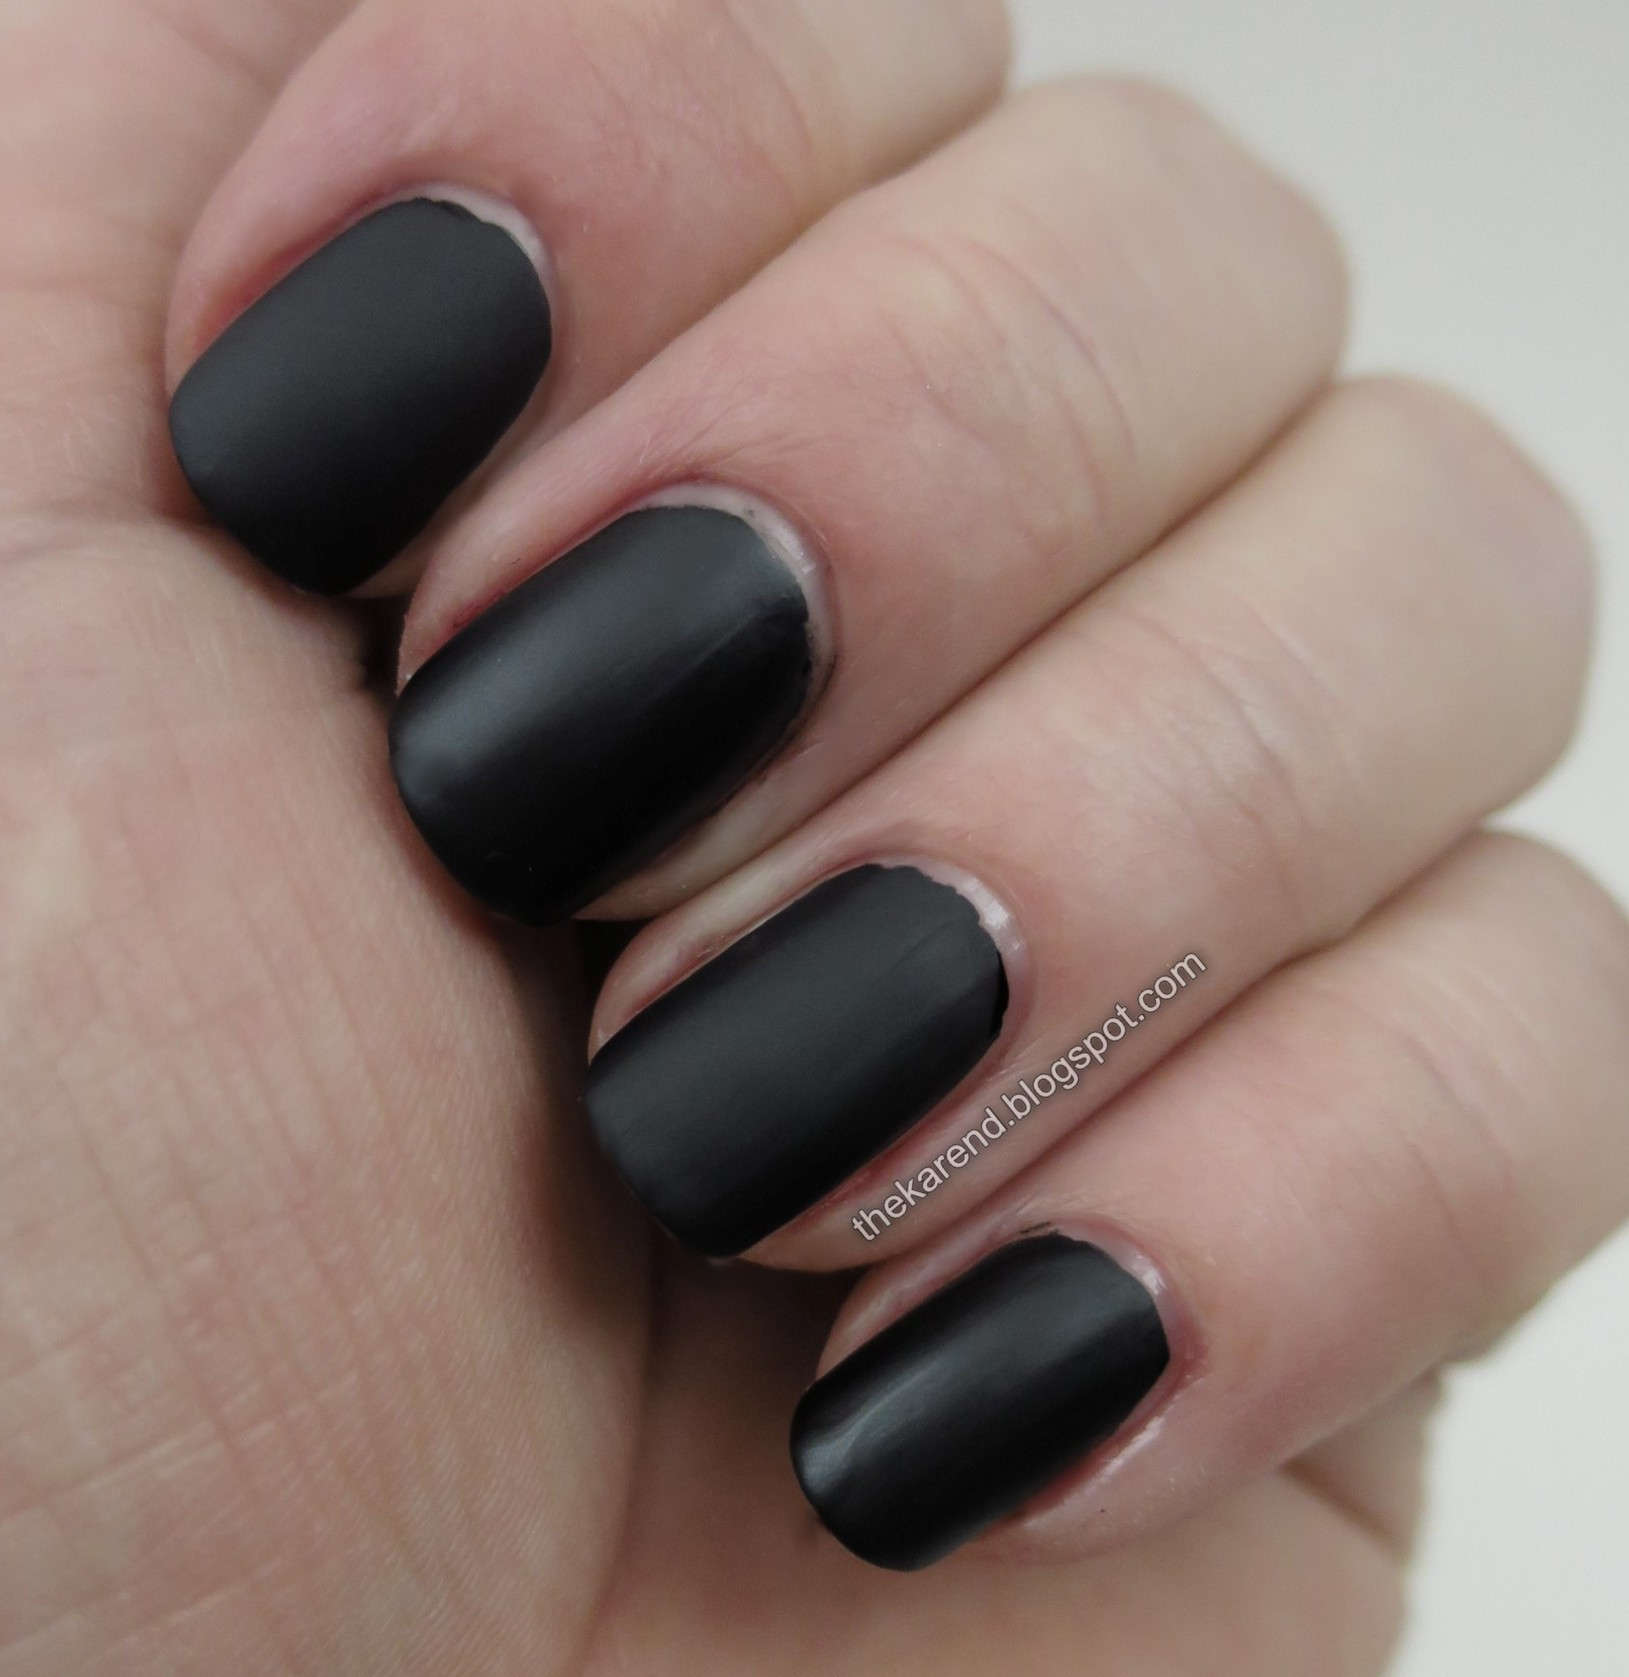 2ad69fa88ba The Sally Hansen Complete Salon (which I got in Canada) dries the least  matte of this group